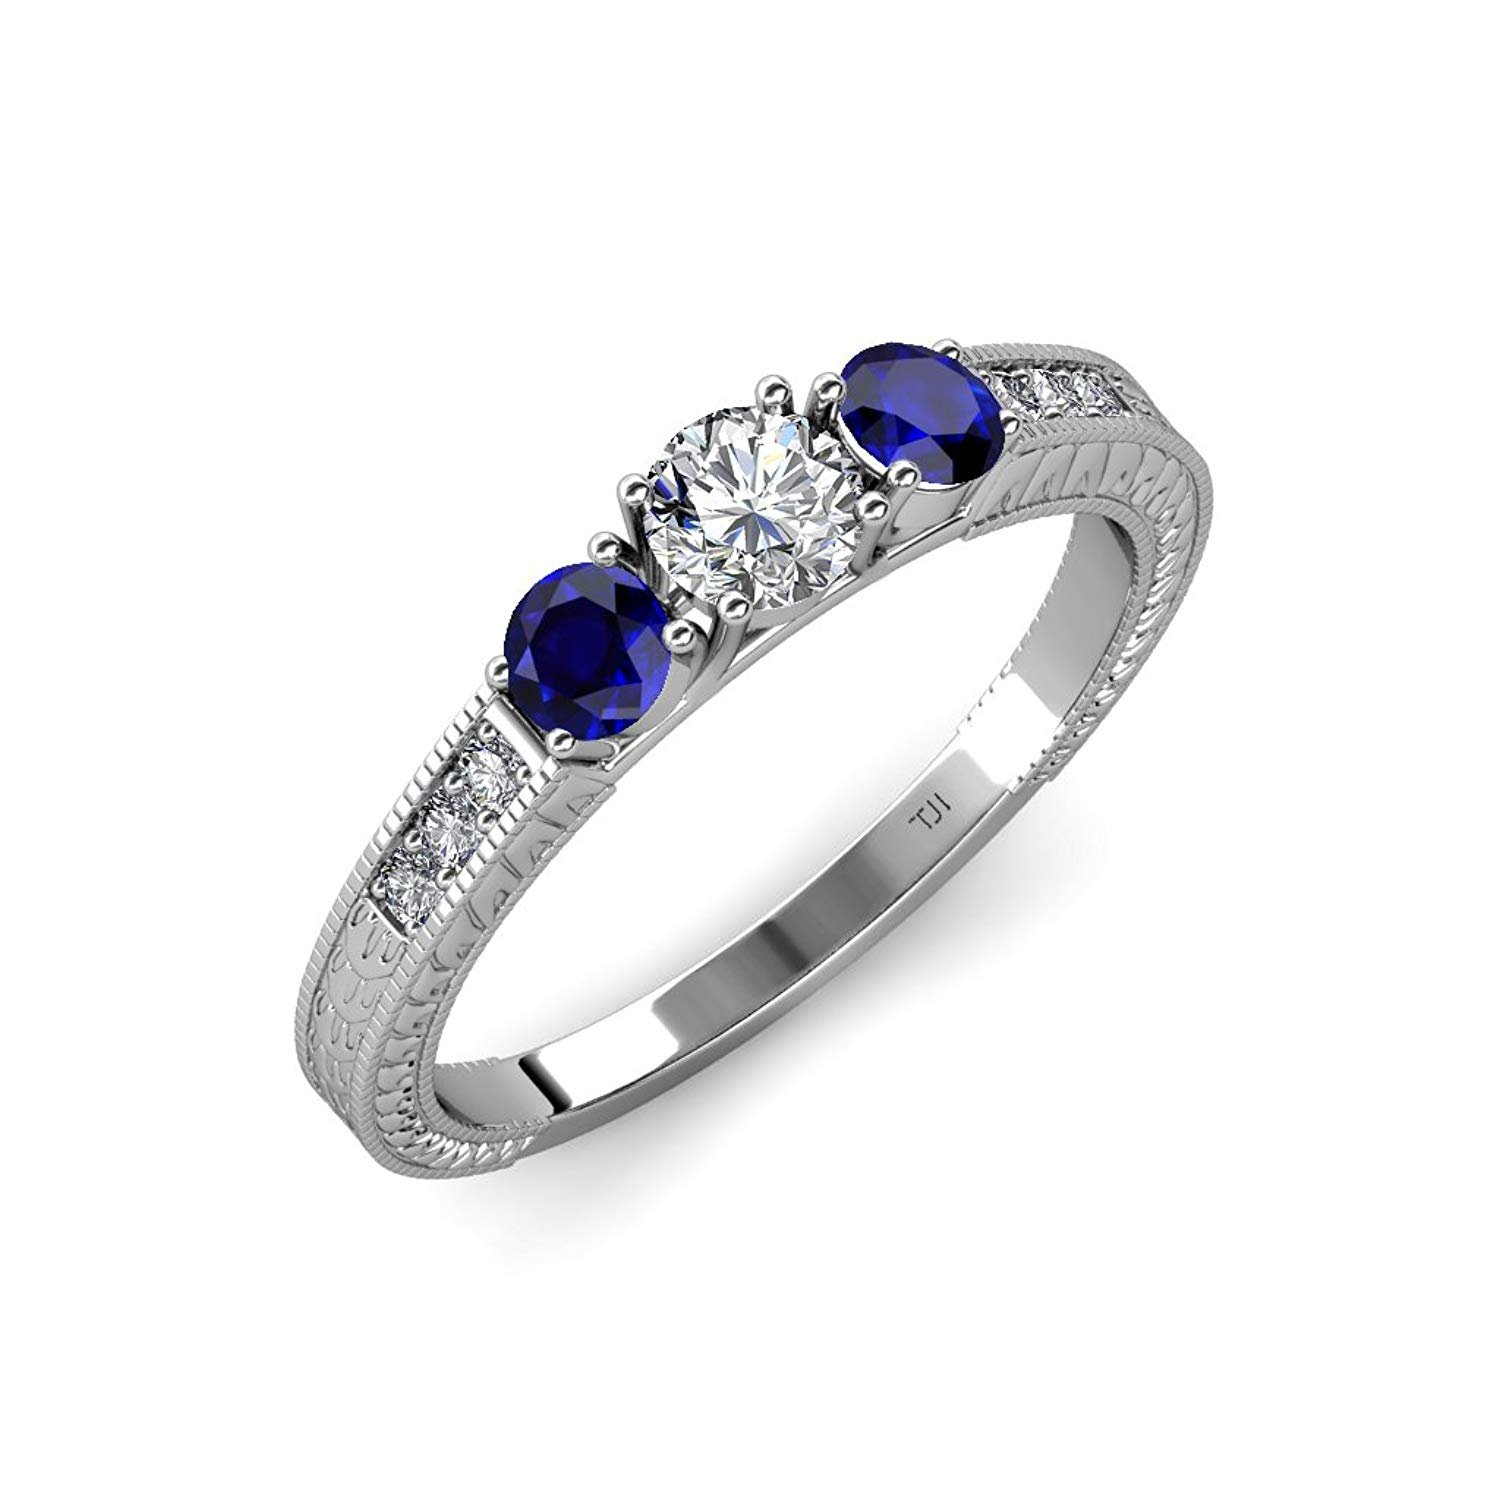 Diamond and Blue Sapphire Milgrain Work 3 Stone Ring with Side Diamond 0.85 ct tw 14K White Gold.size 8.5 by TriJewels